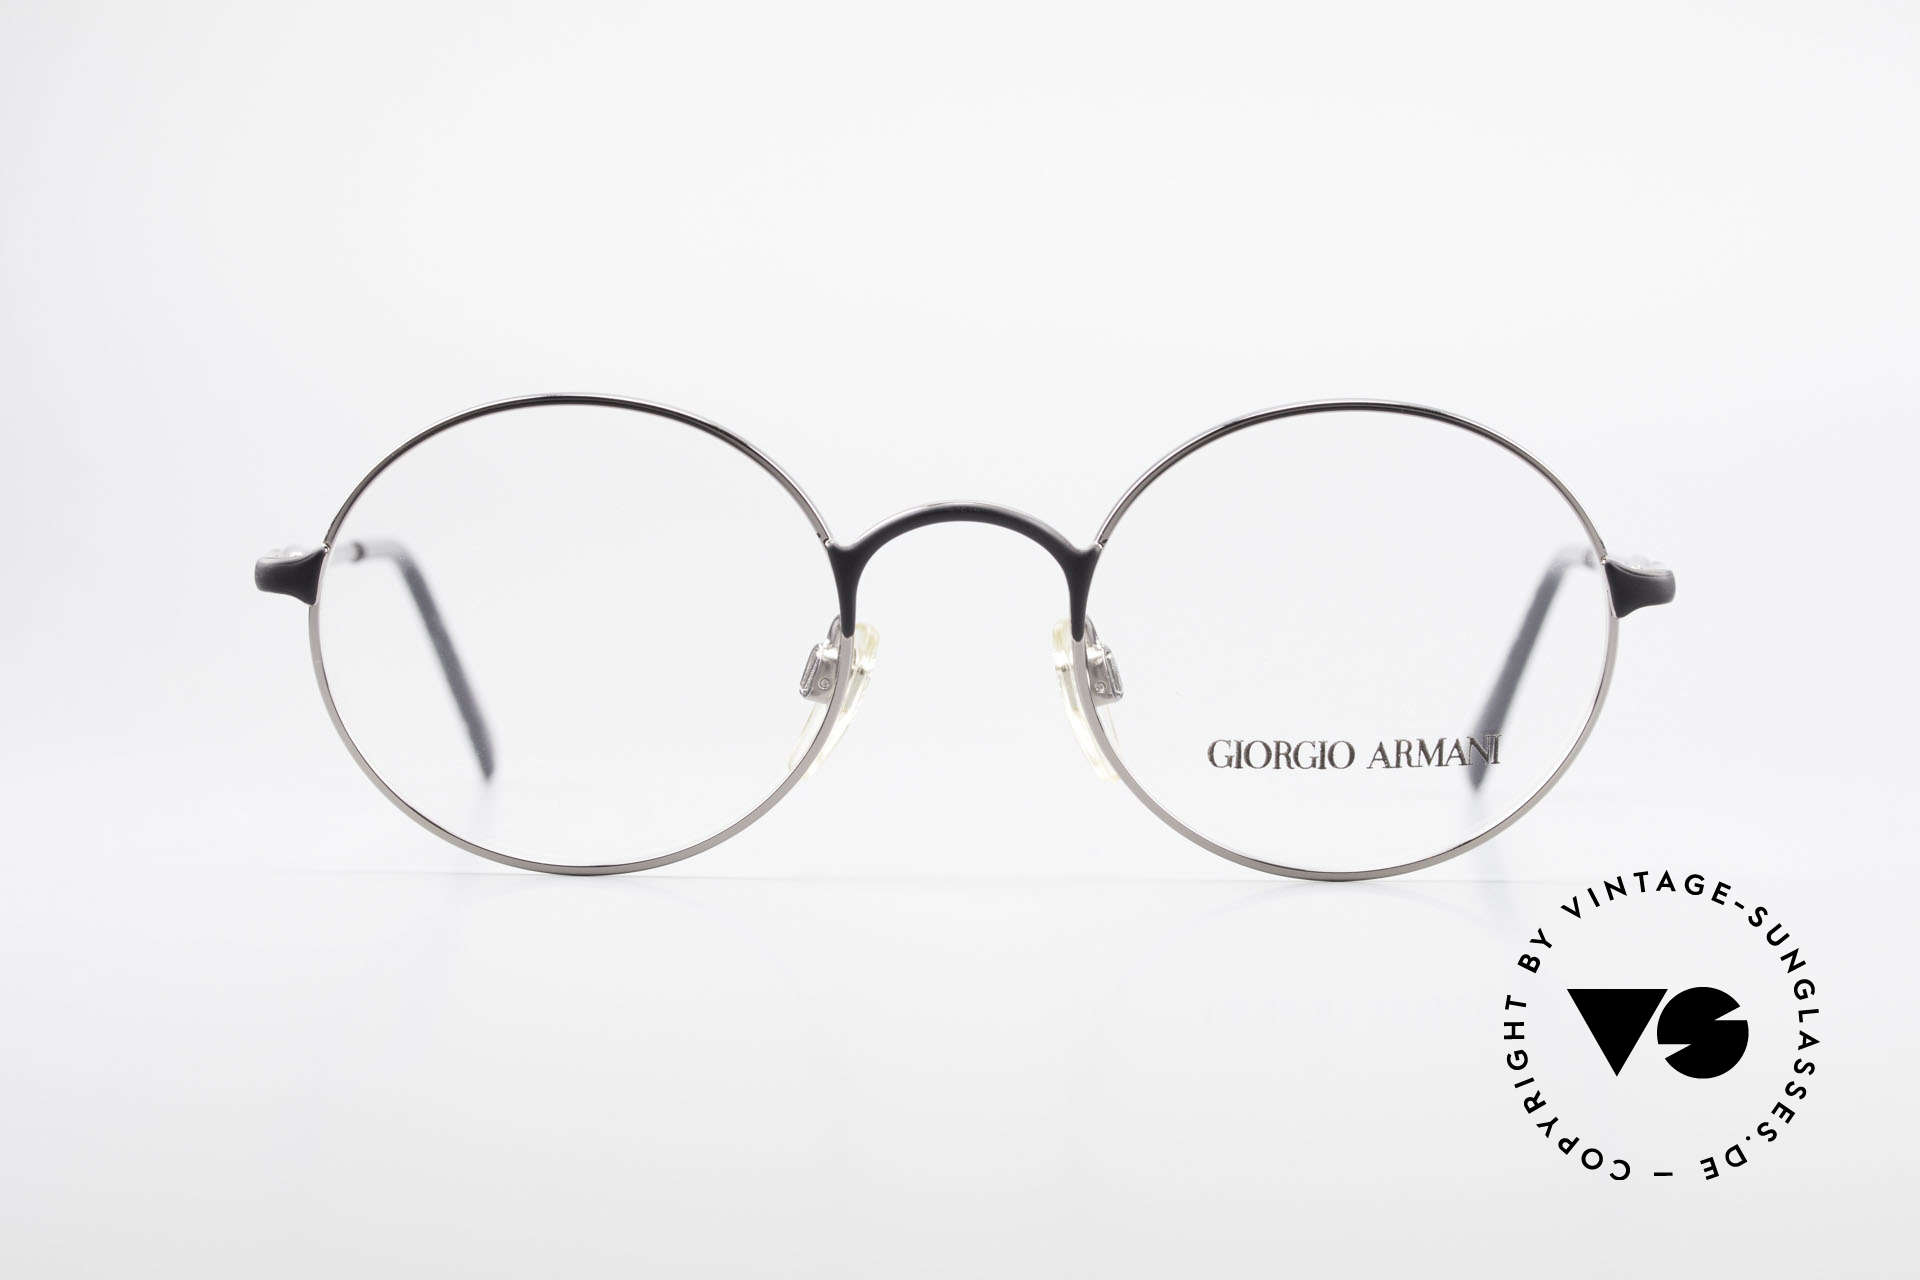 Giorgio Armani 243 Round Oval Glasses 90s Small, discreet round framework in SMALL size (122mm), Made for Men and Women